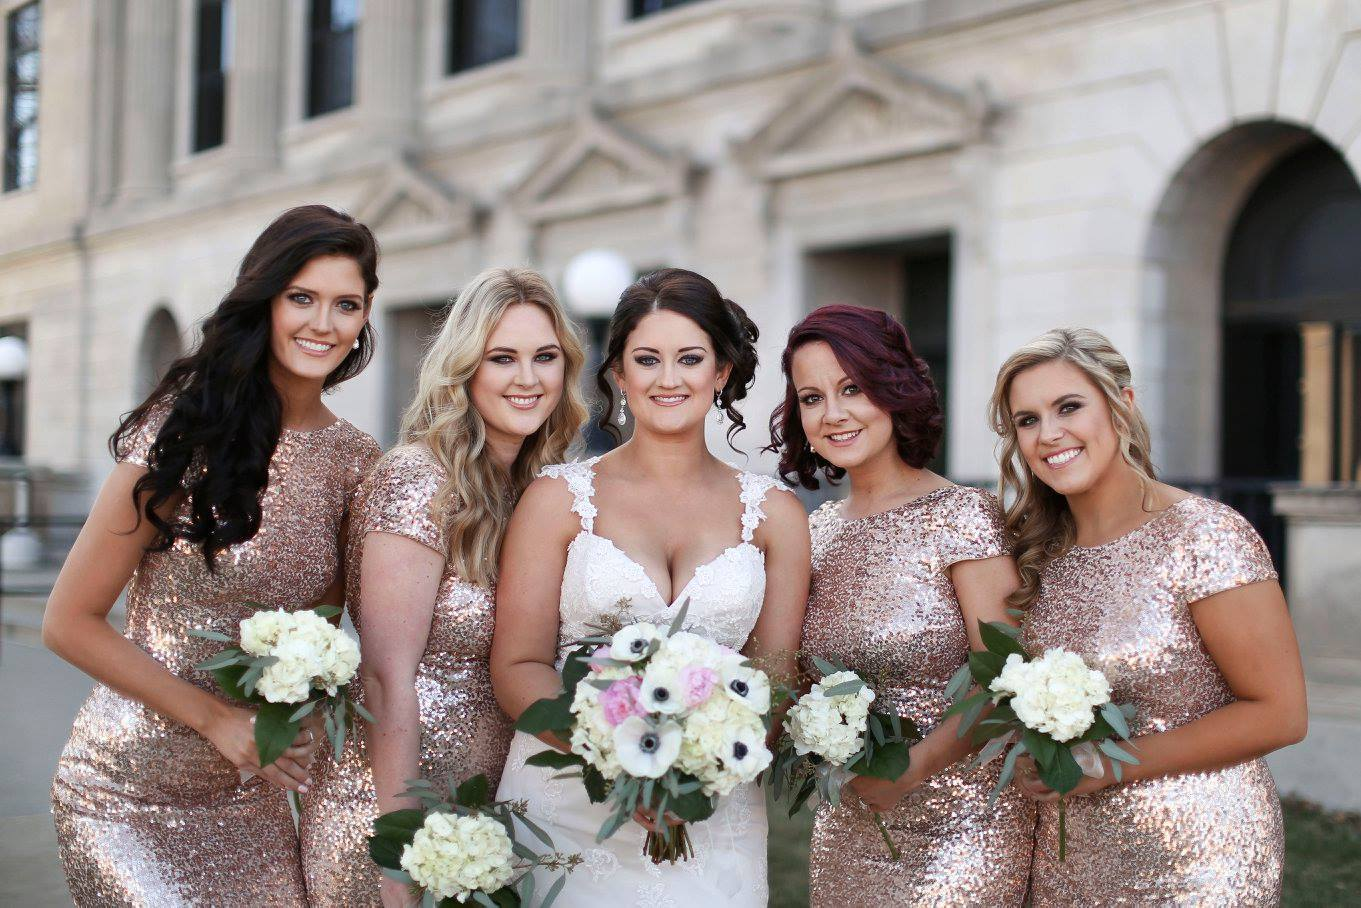 Bridesmaid: Danielle Johnson // Bride: Sarah Reynolds // Location: Hotel Bothwell in Sedalia, MO // Date: March 5, 2016 // Photographer:  Shanna Marie Photography